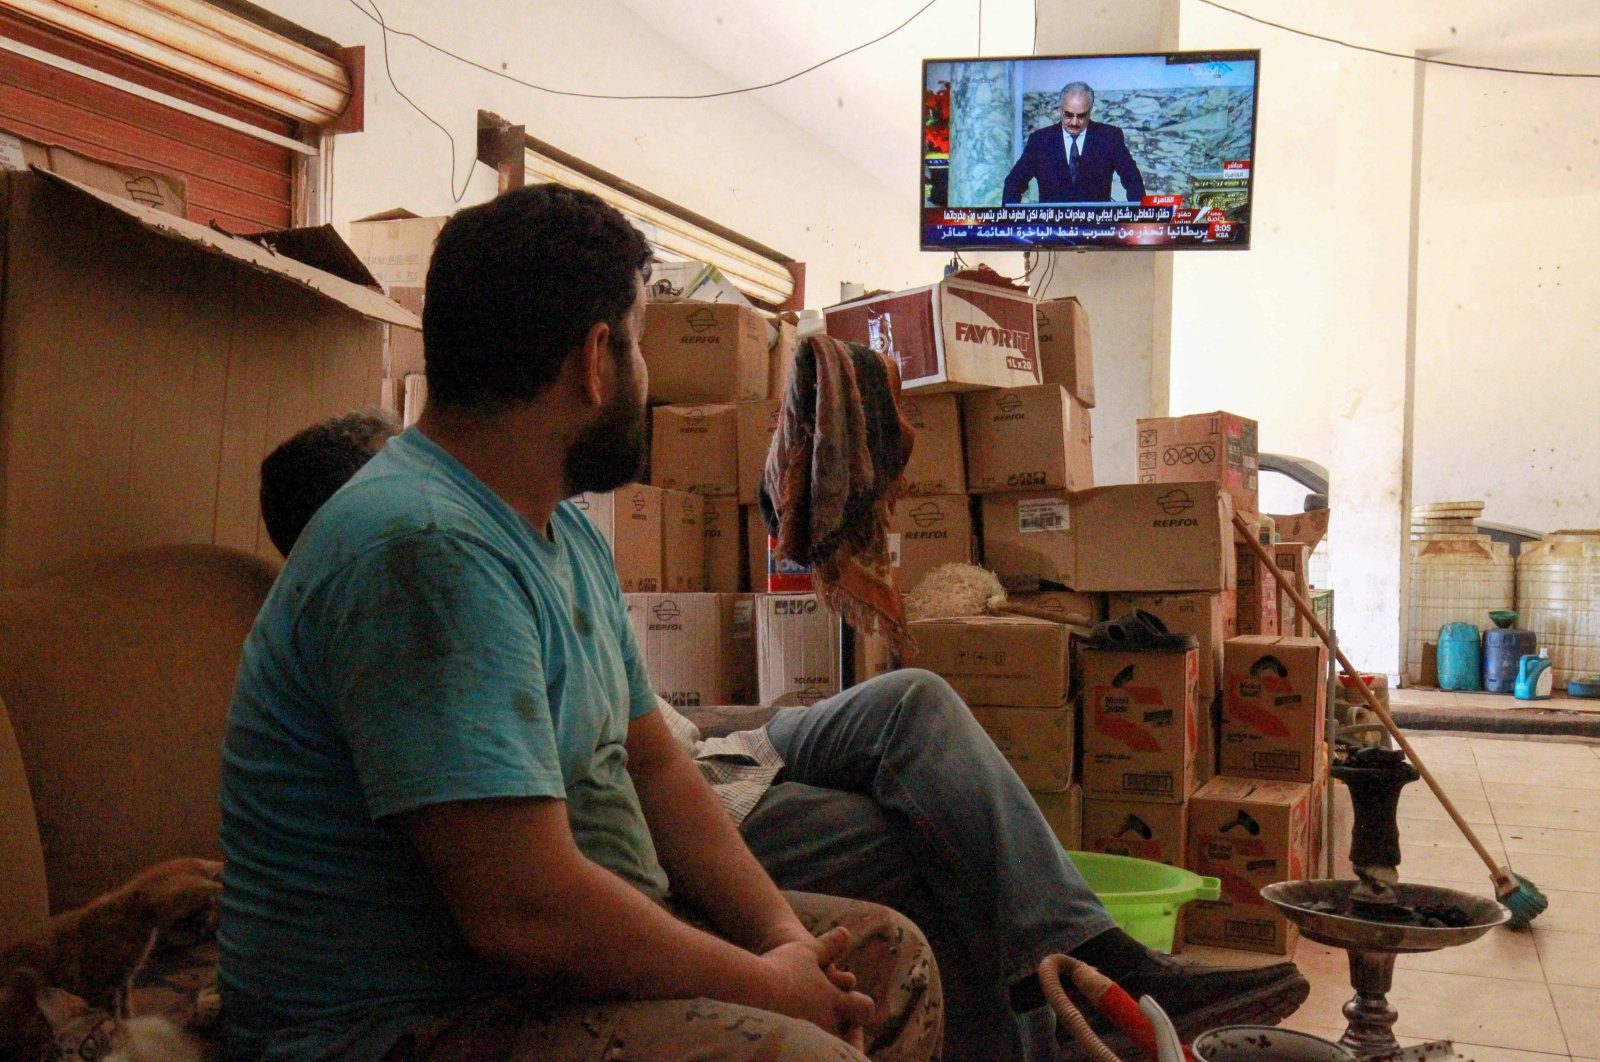 """Libyan mechanics watch a televised speech by putschist Gen. Khalifa Haftar, during the talks dubbed the """"Cairo declaration"""" at their shop in the eastern Libyan port city of Benghazi on June 6, 2020. (AFP Photo)"""